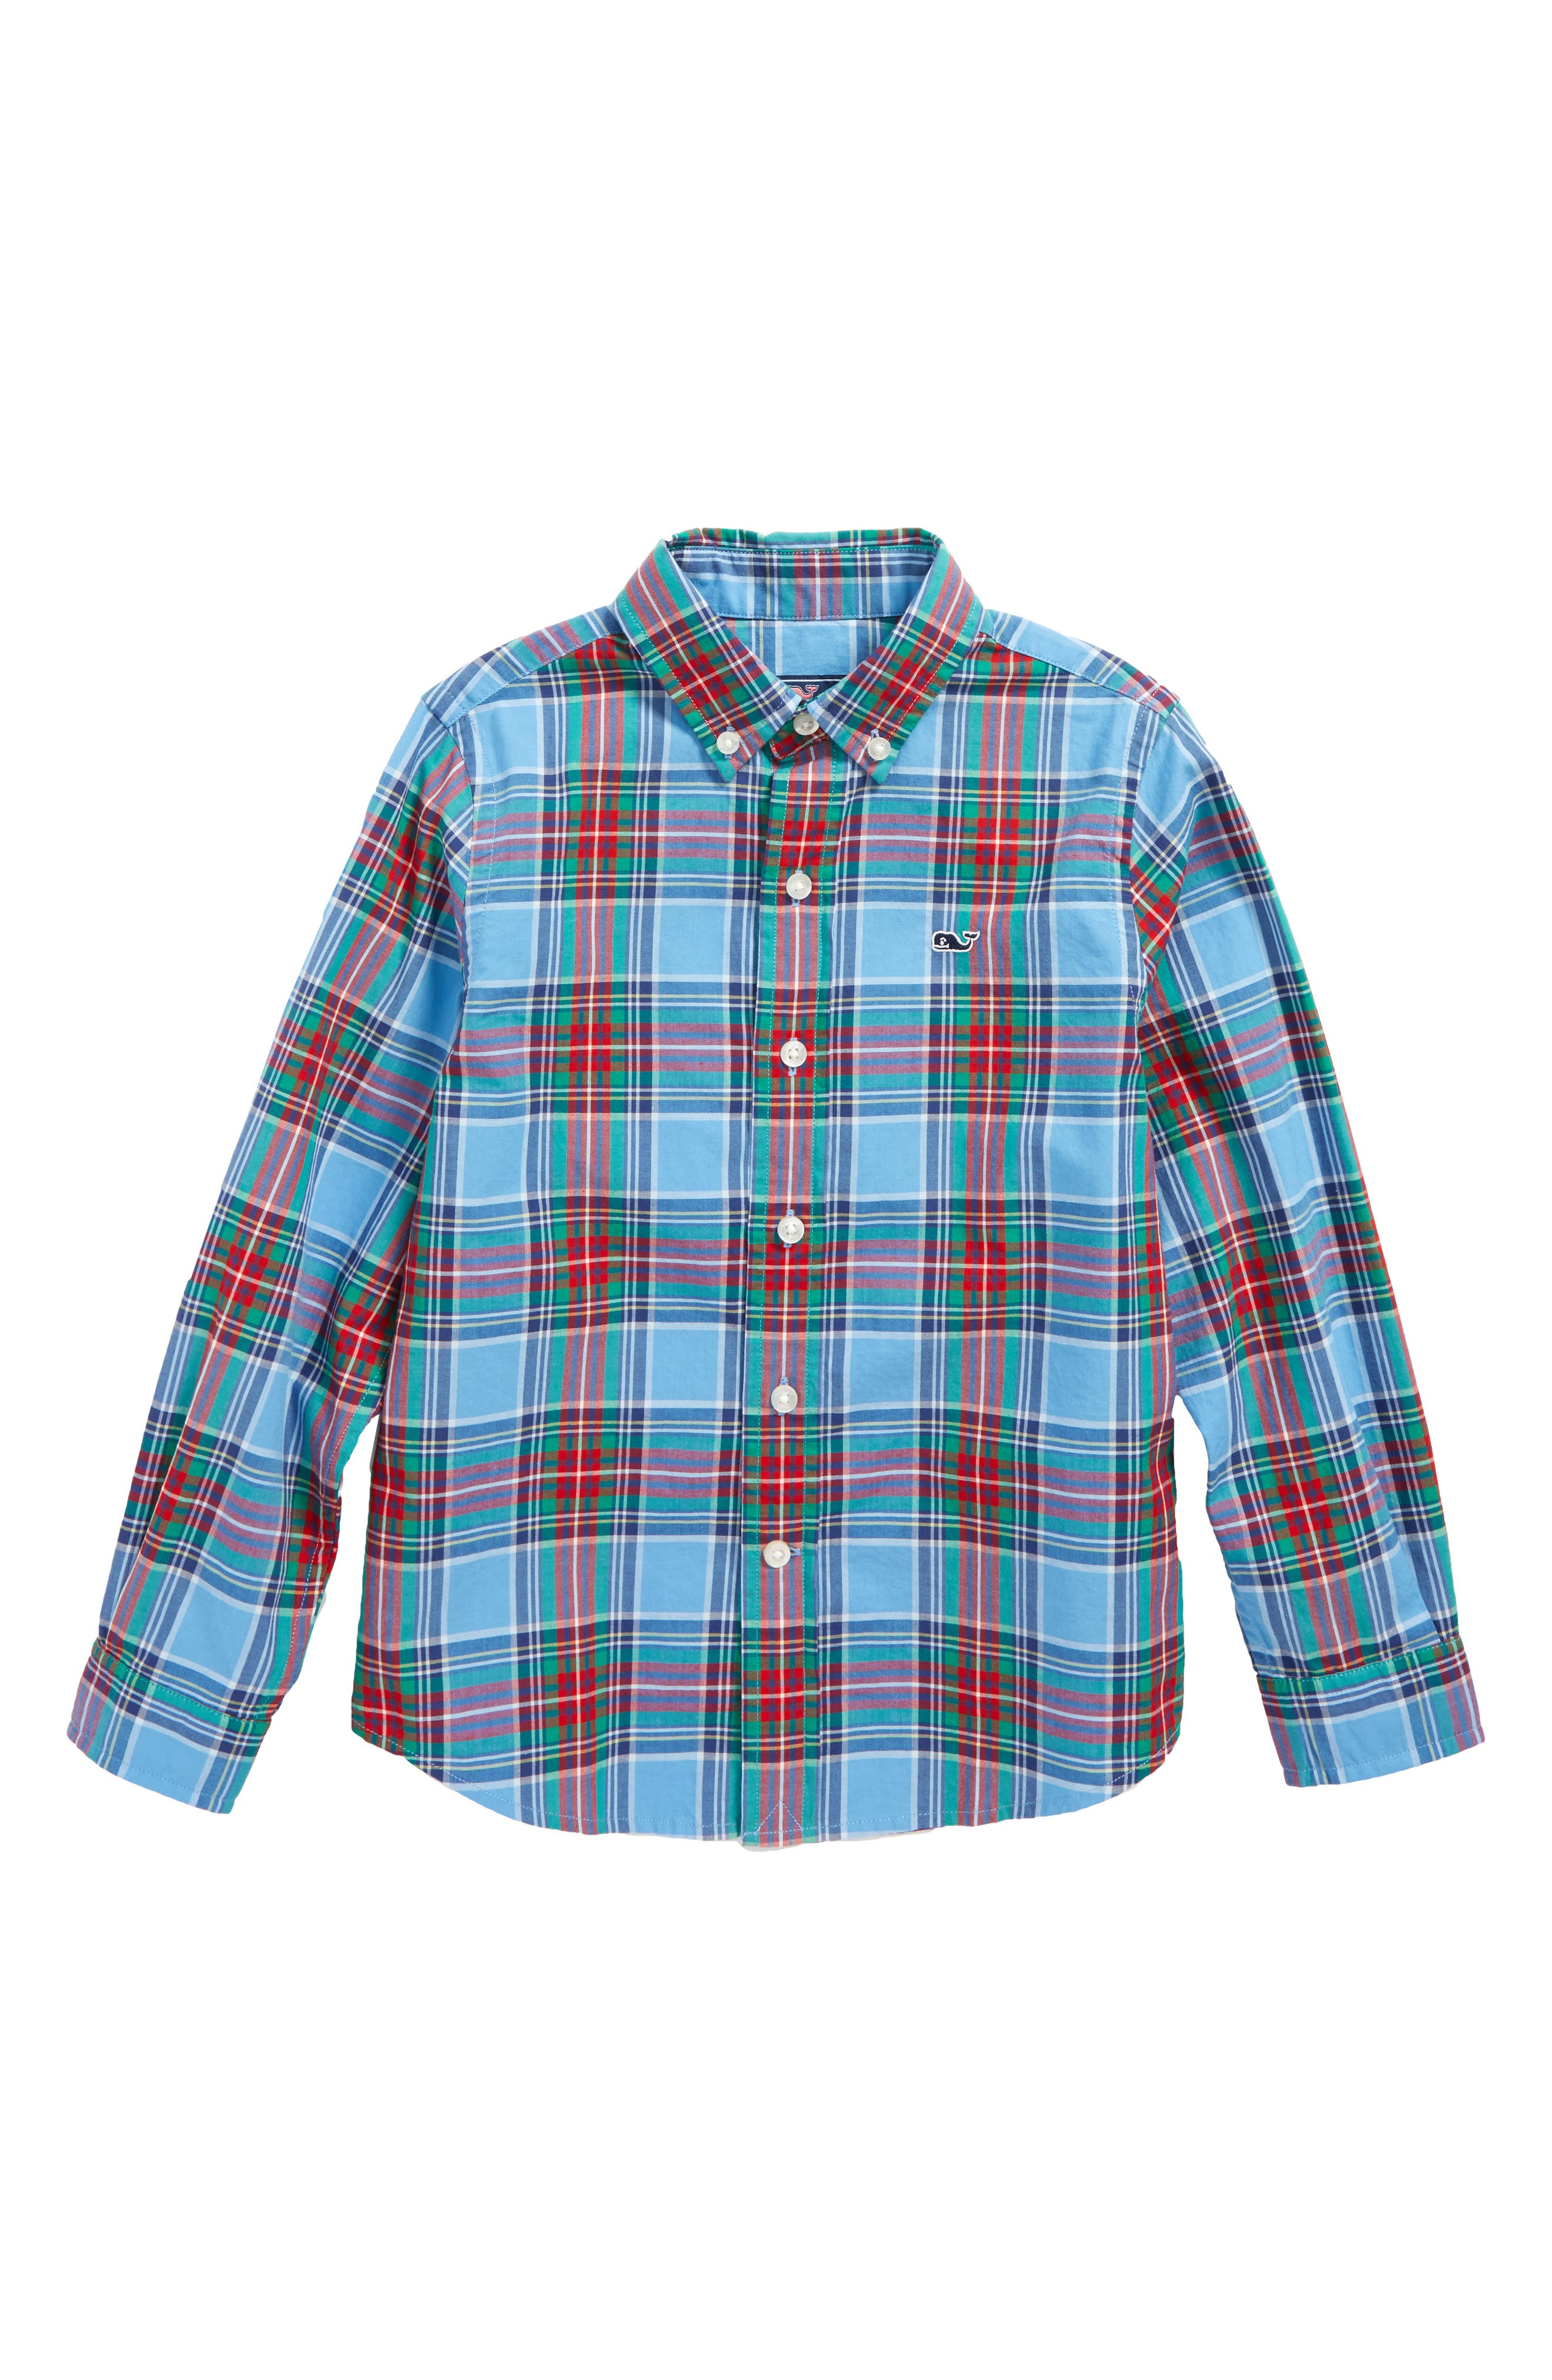 Belmont Plaid Whale Shirt,                         Main,                         color, 447